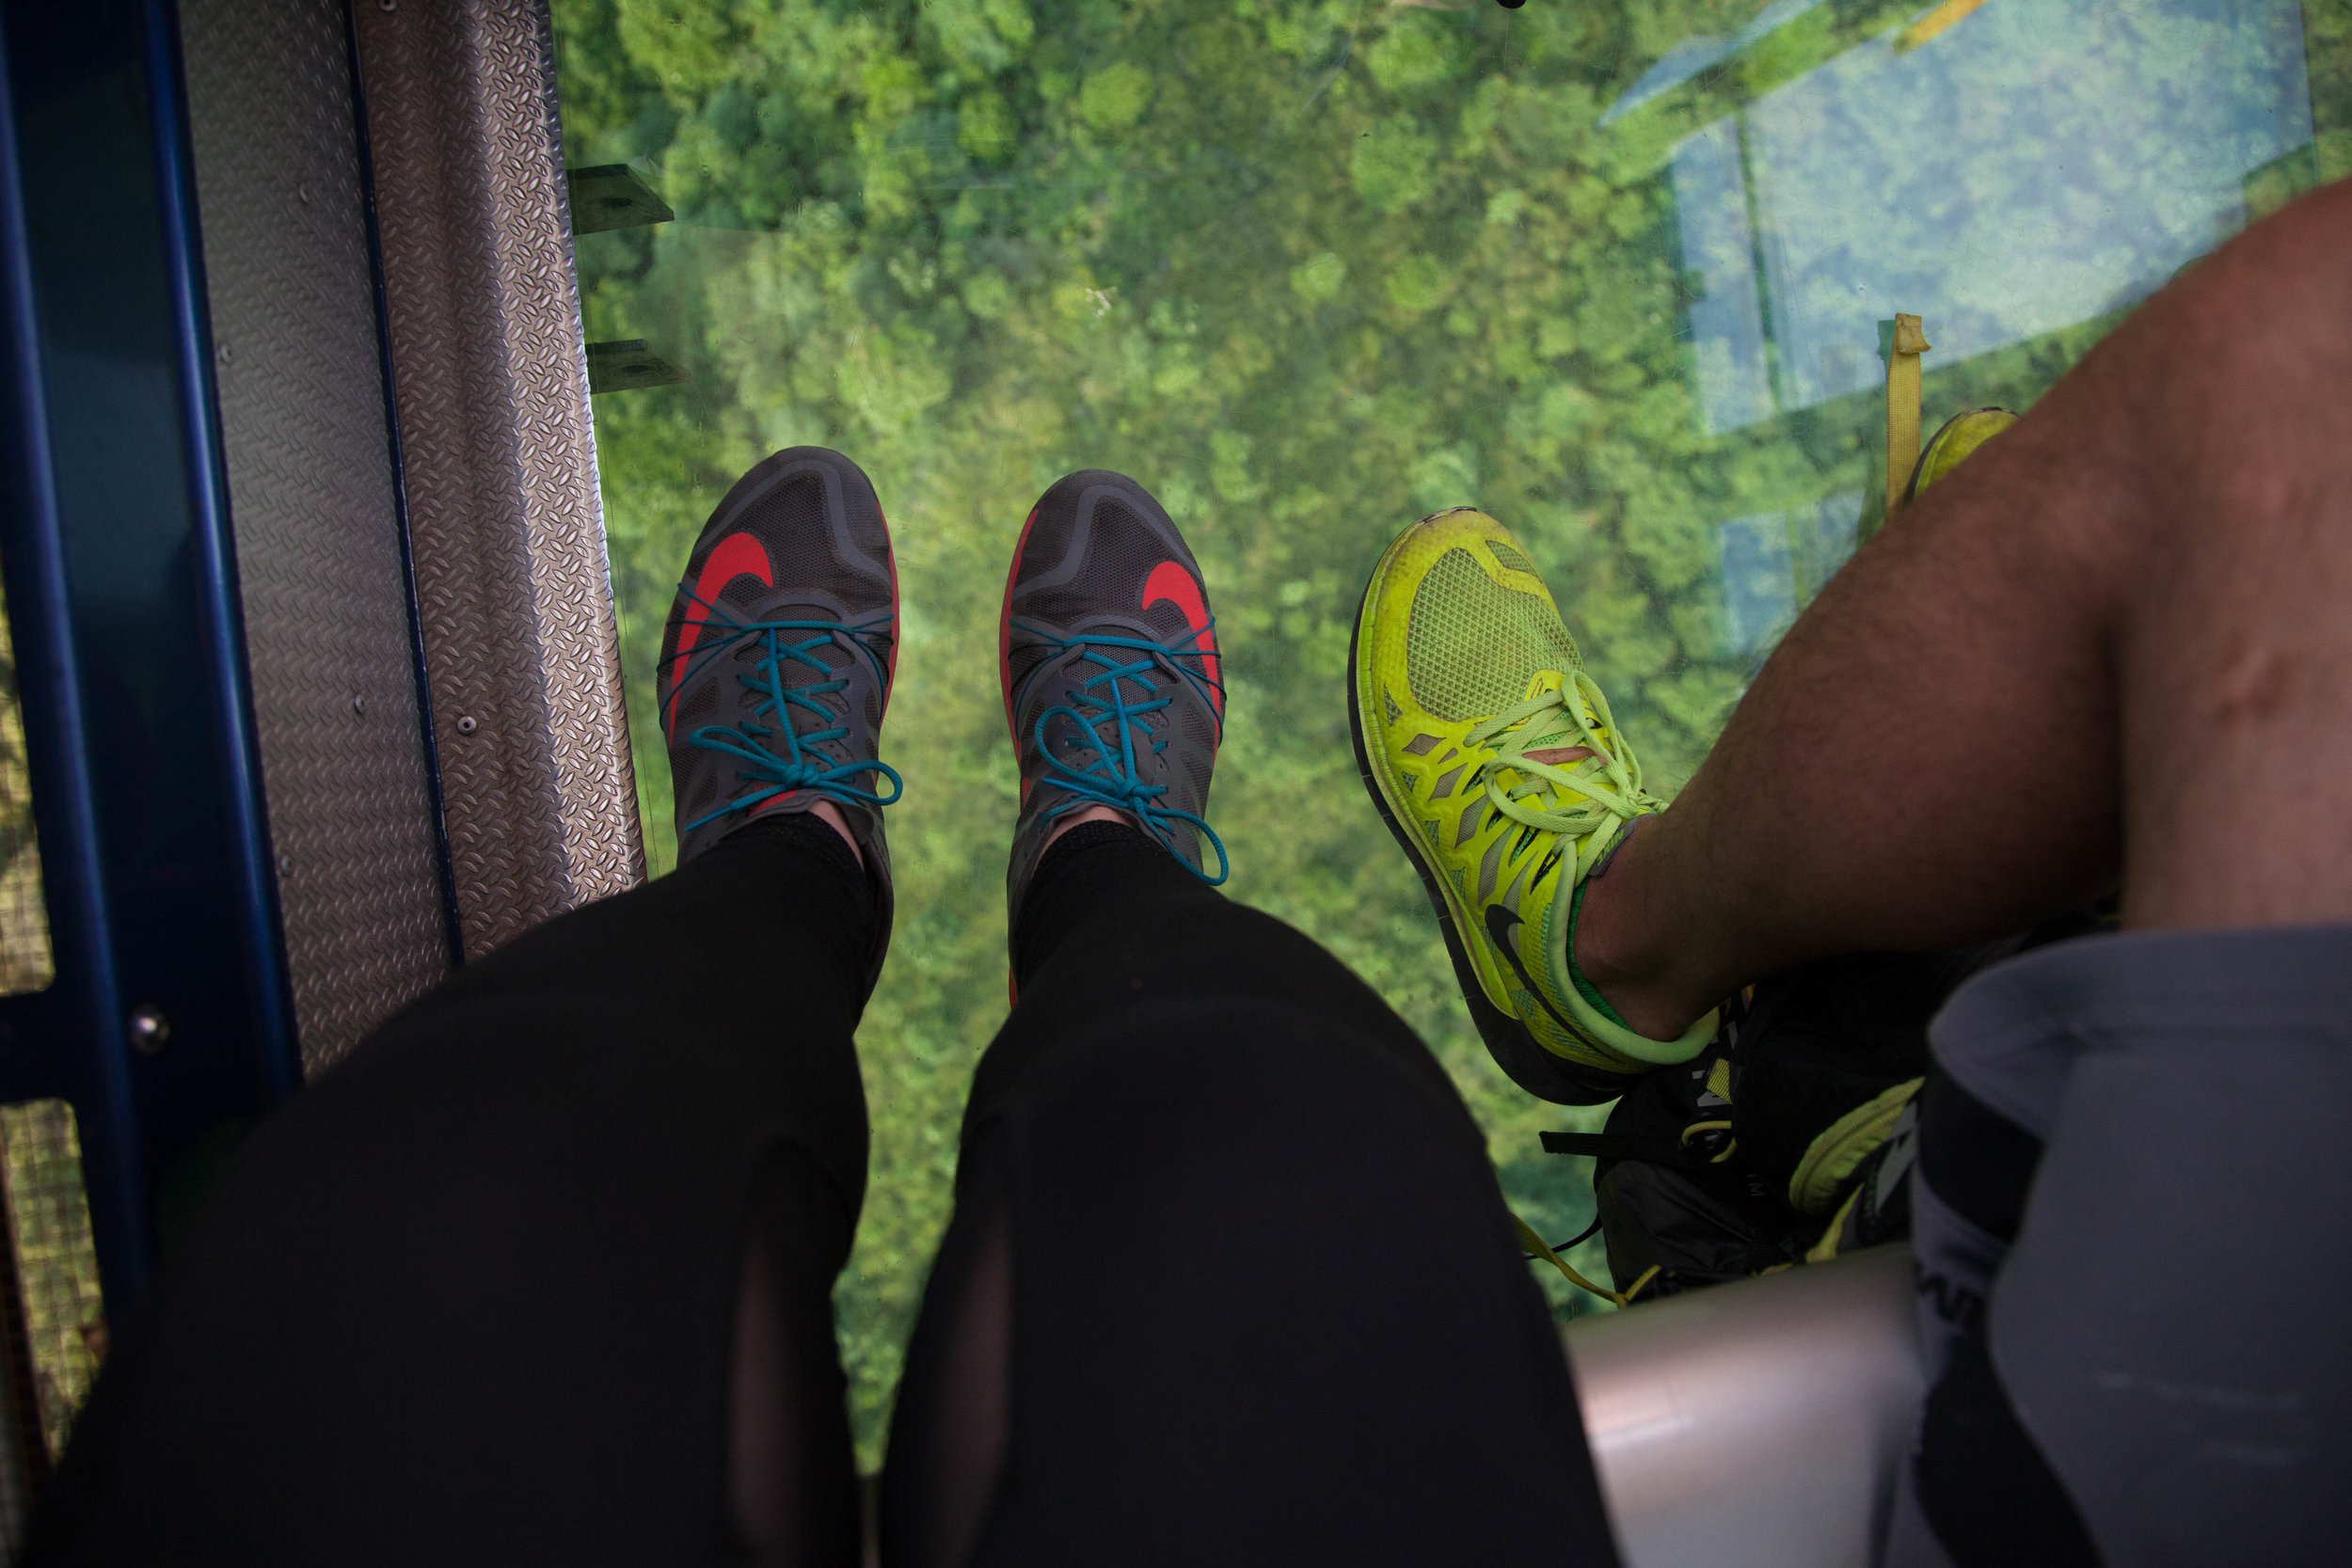 Floor of the Crystal cabin in the Nongping cable car